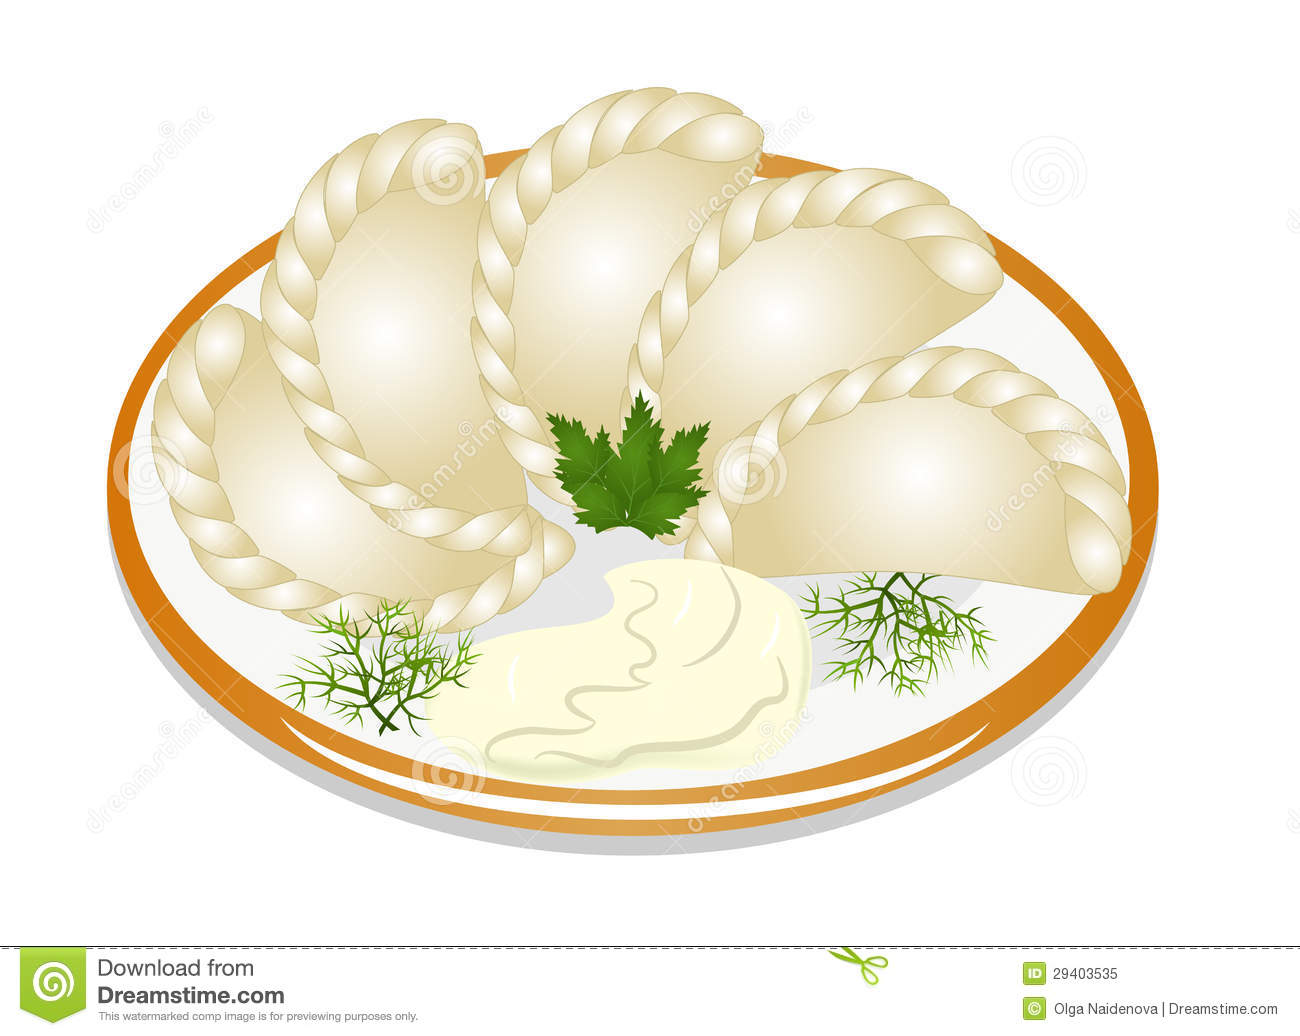 Painting The Kitchen Dumplings With Sour Cream On The Plate Royalty Free Stock